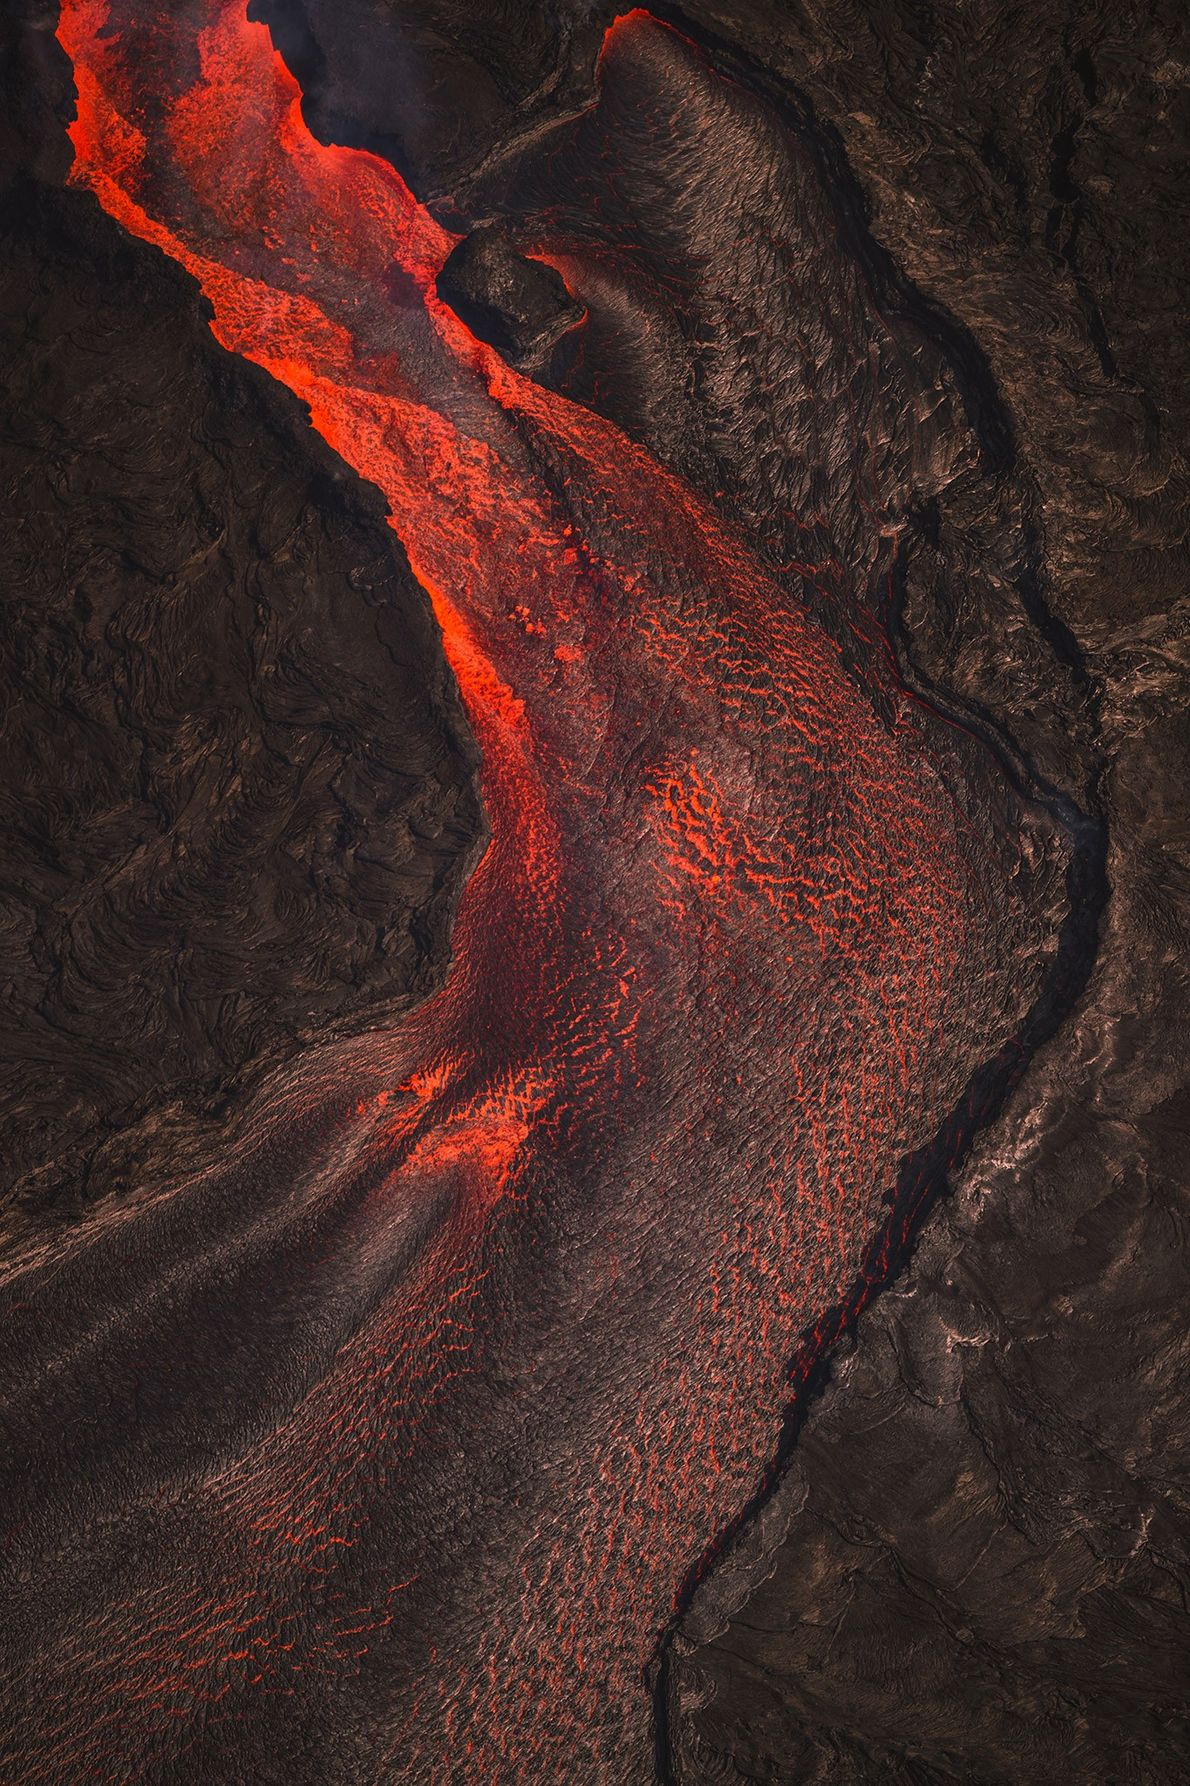 Kilauea, Hawaii